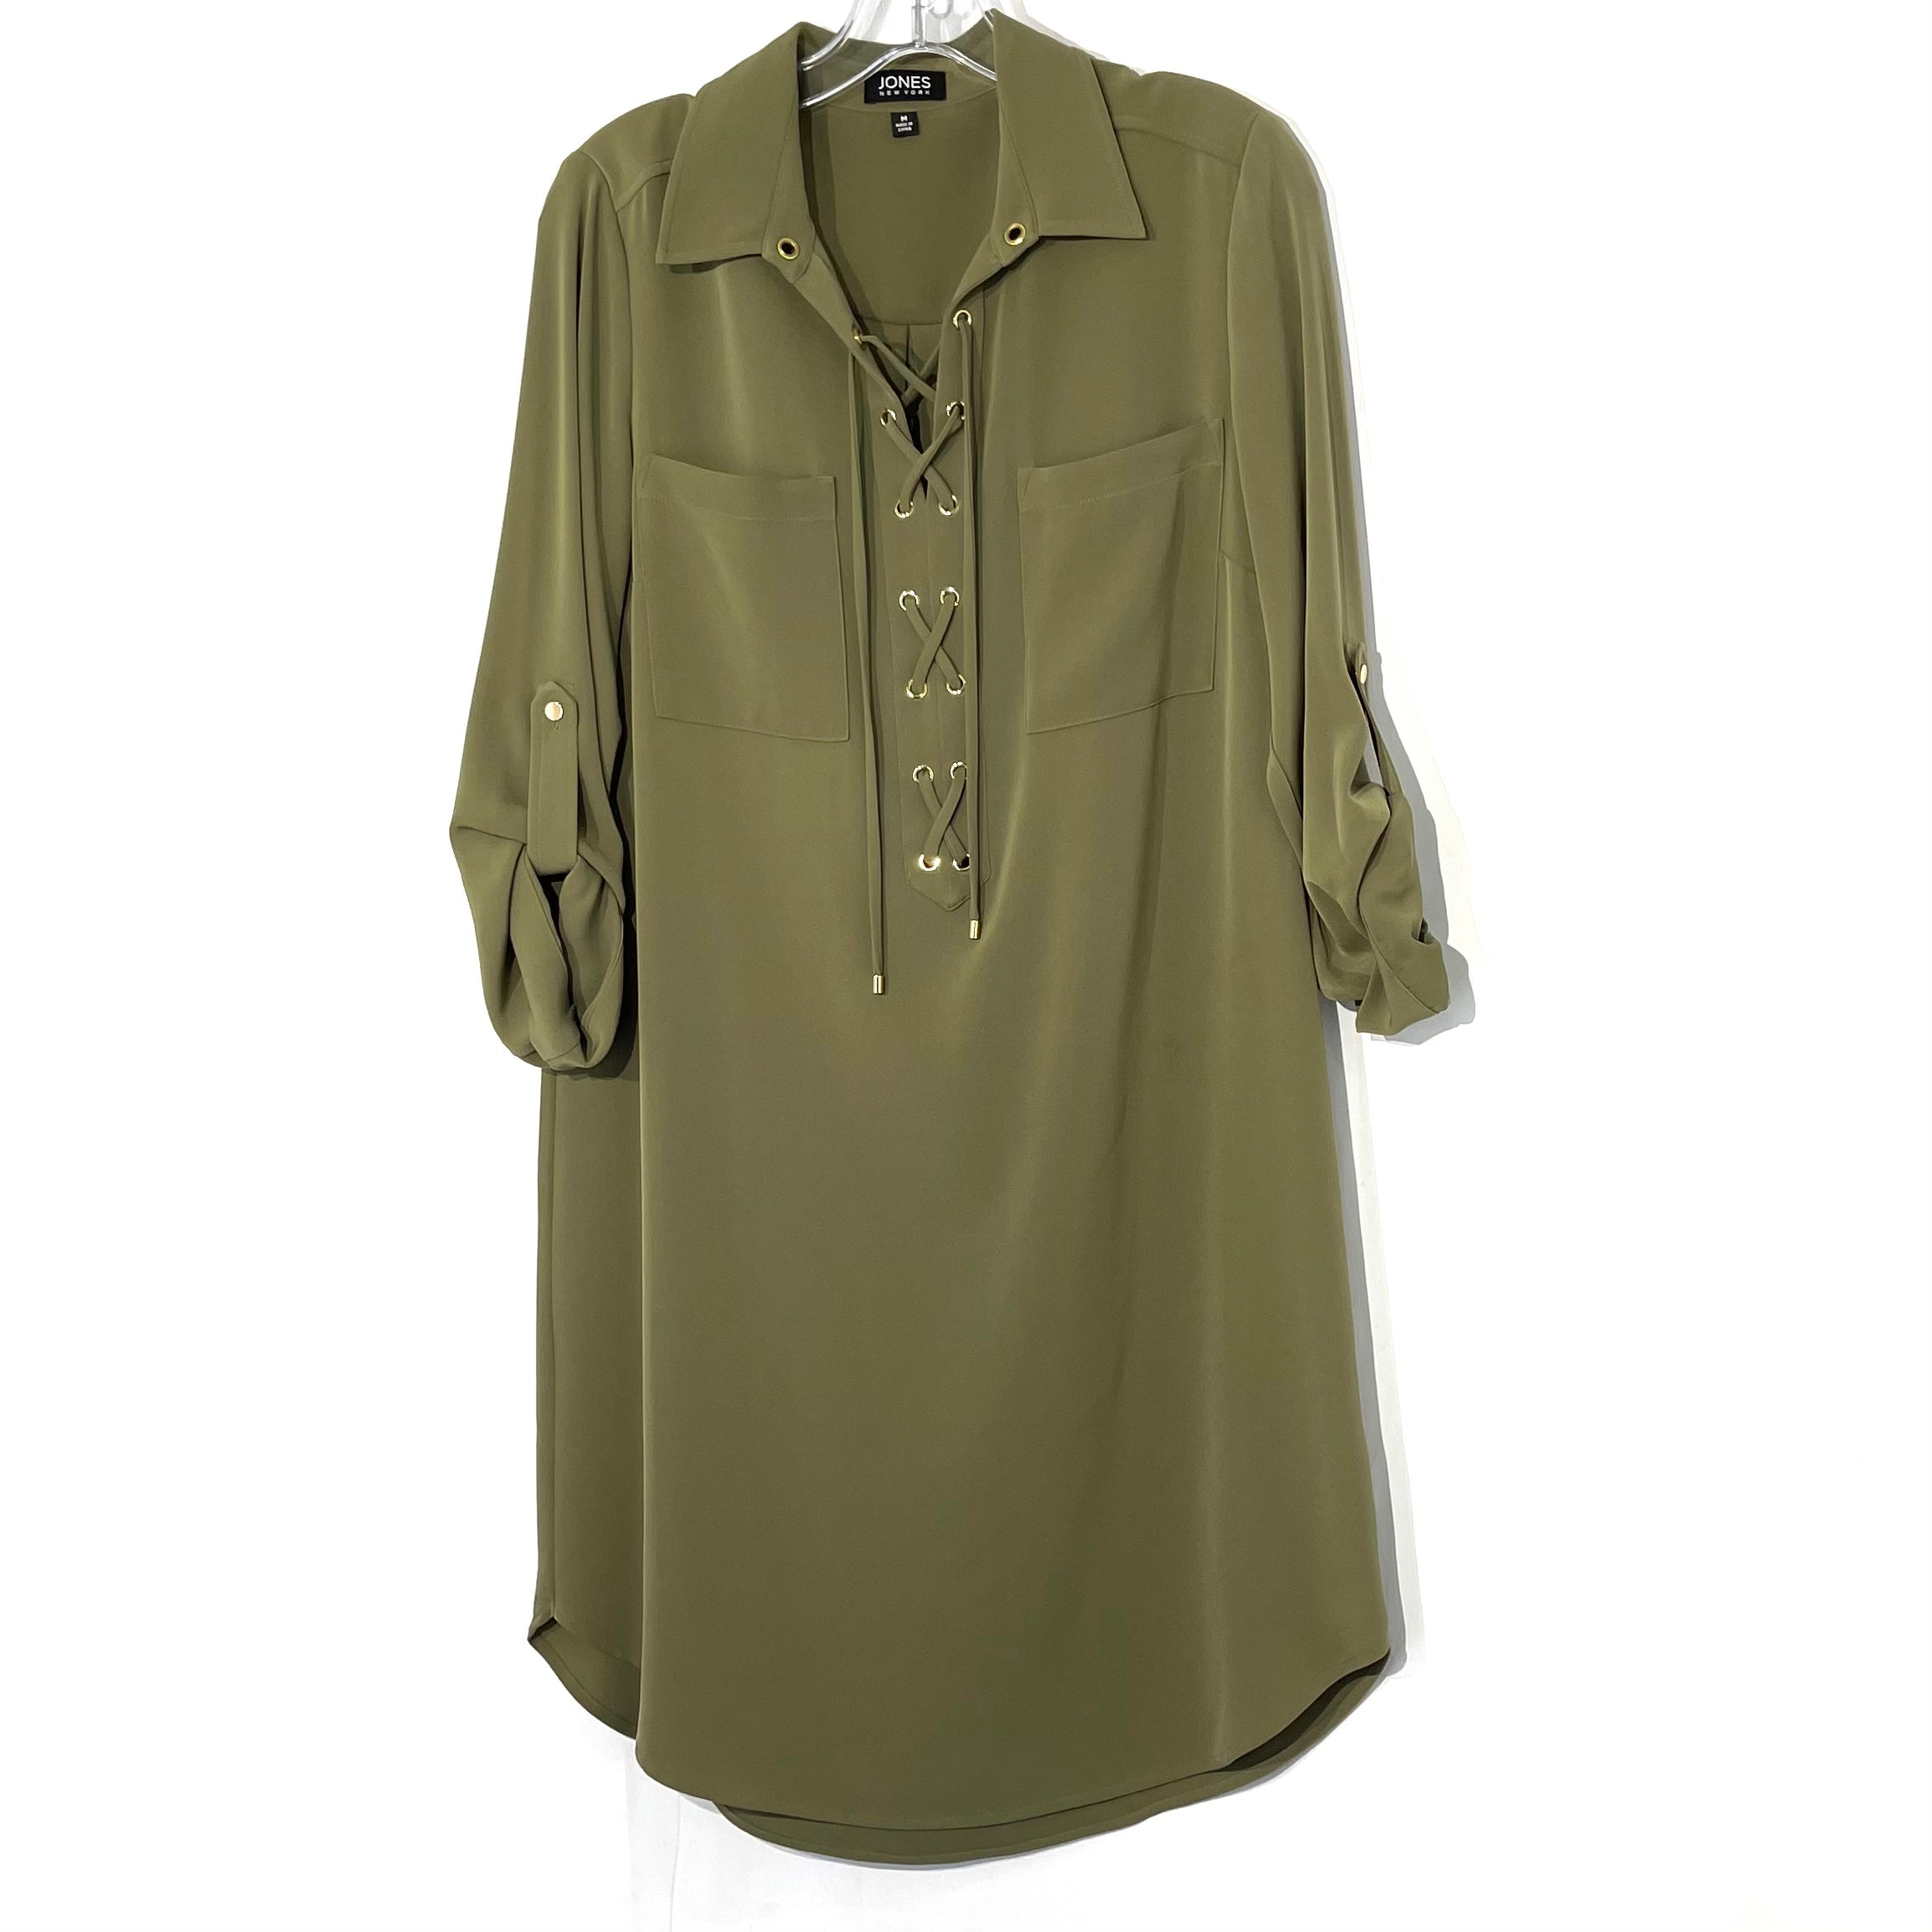 Primary Photo - BRAND: JONES NEW YORK <BR>STYLE: DRESS SHORT LONG SLEEVE <BR>COLOR: OLIVE <BR>SIZE: M <BR>SKU: 262-26275-73764